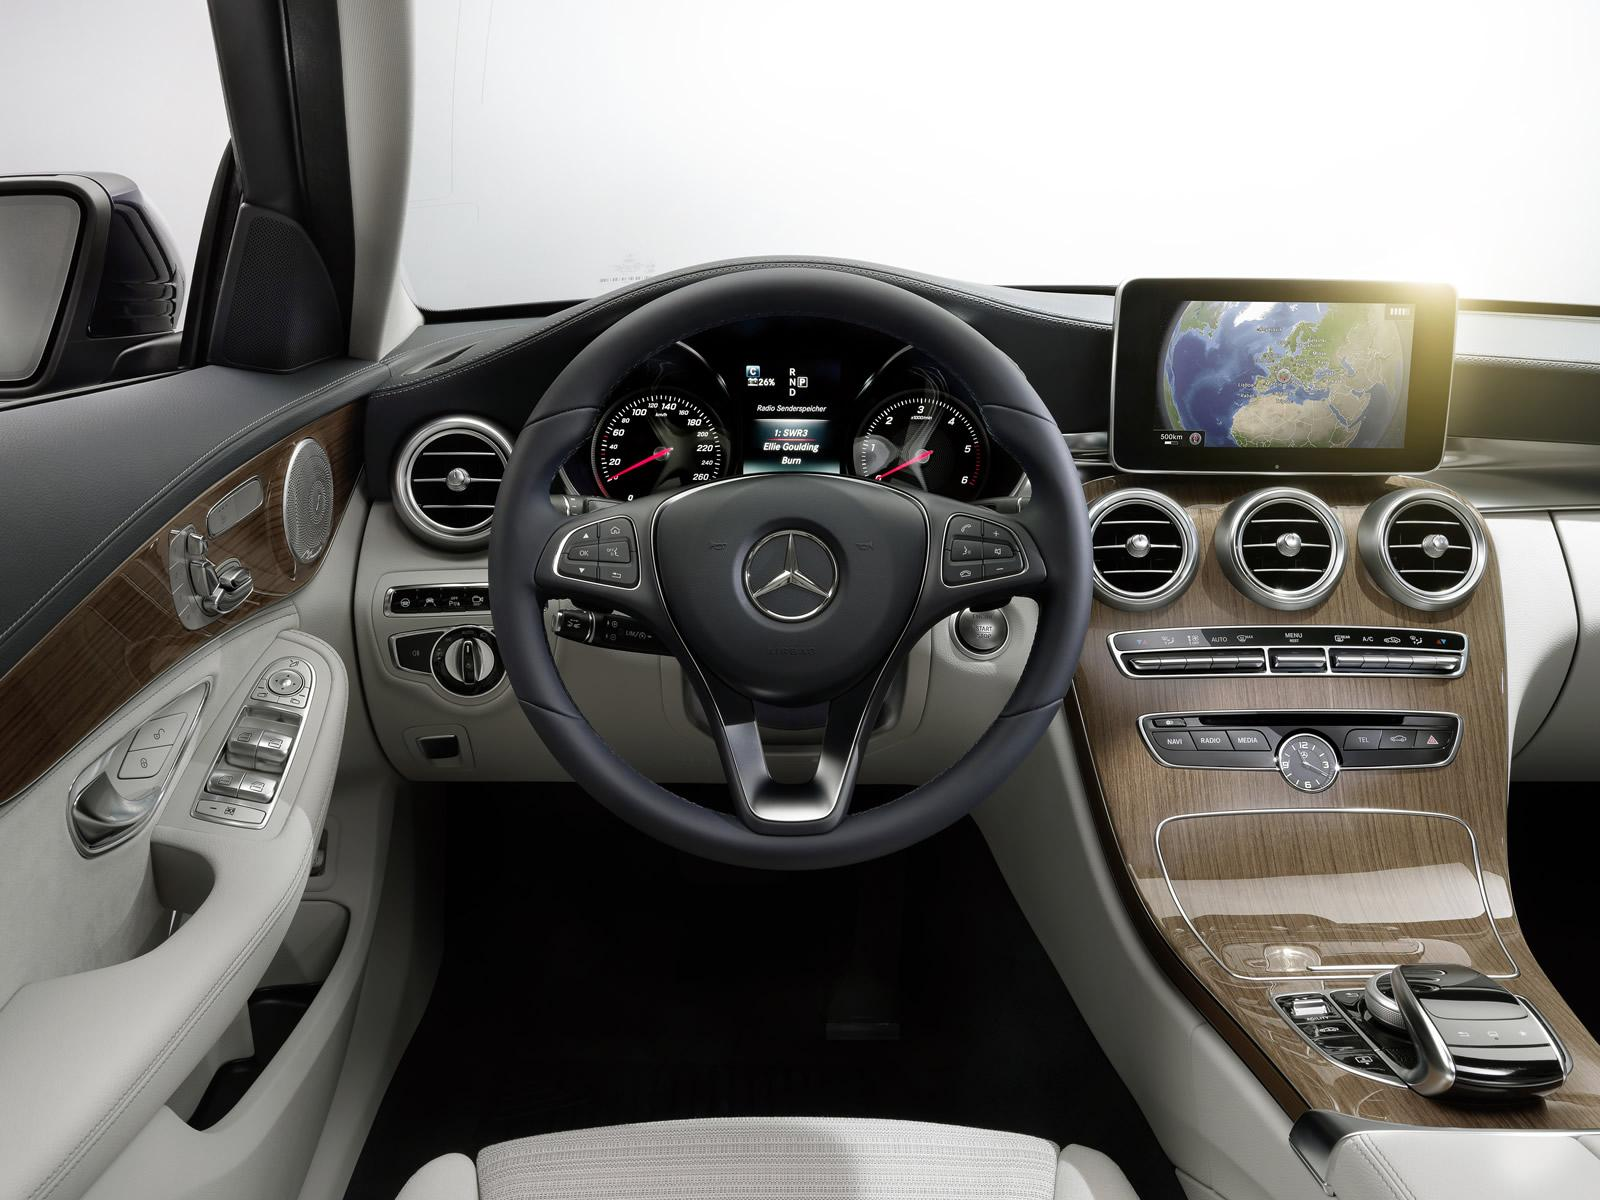 2014 Mercedes Benz C Class Interior Forcegt Com